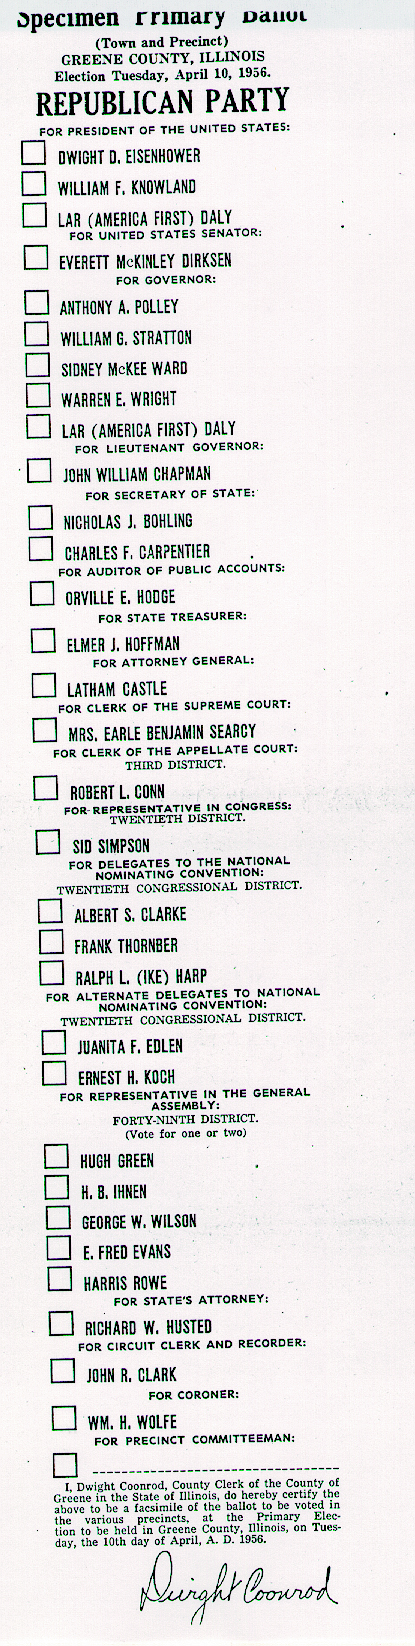 Primary ballot, 1956, Green County, Illinois